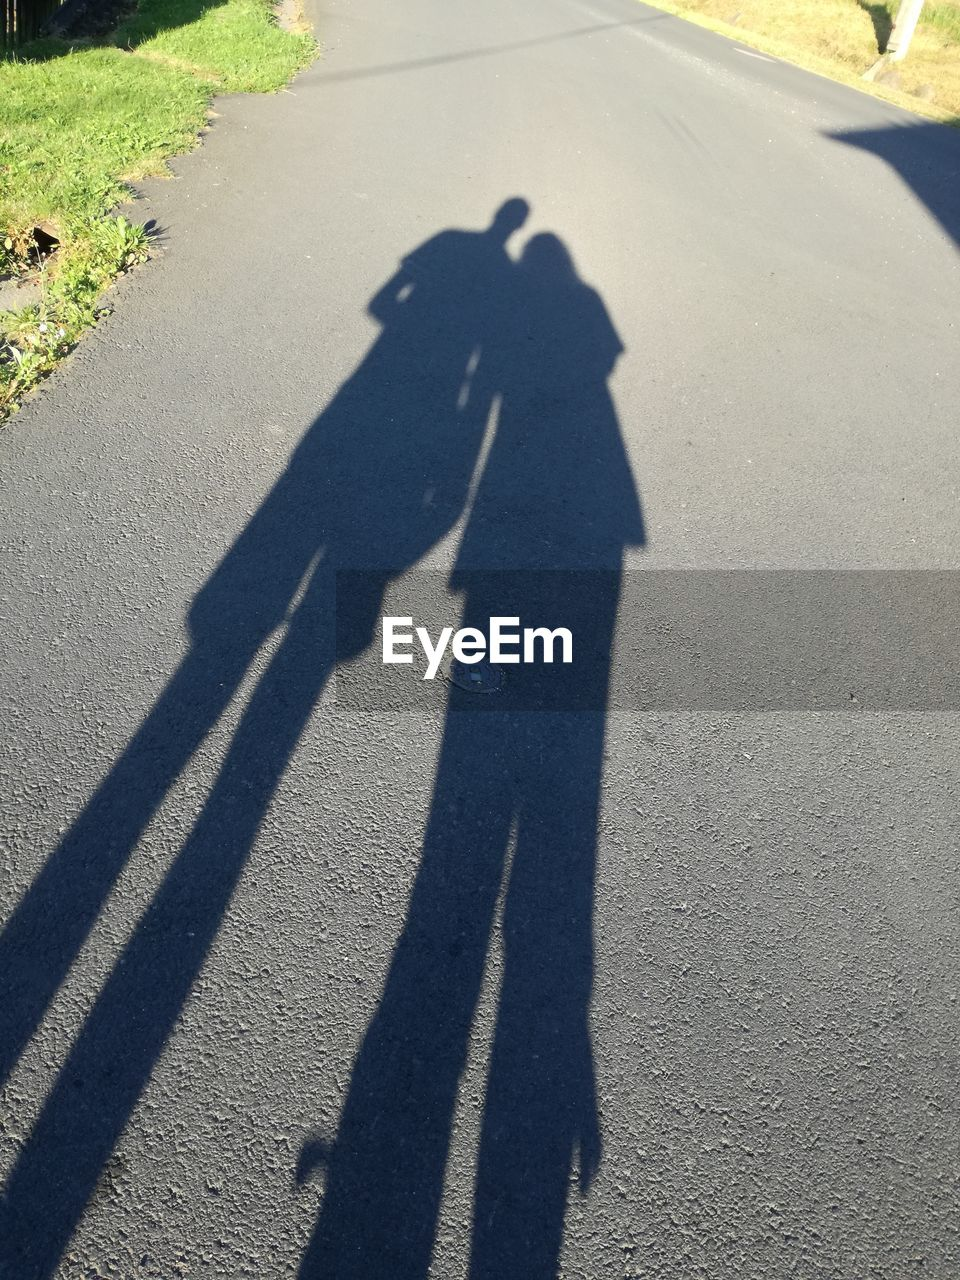 shadow, focus on shadow, sunlight, long shadow - shadow, two people, real people, high angle view, men, togetherness, day, lifestyles, road, outdoors, people